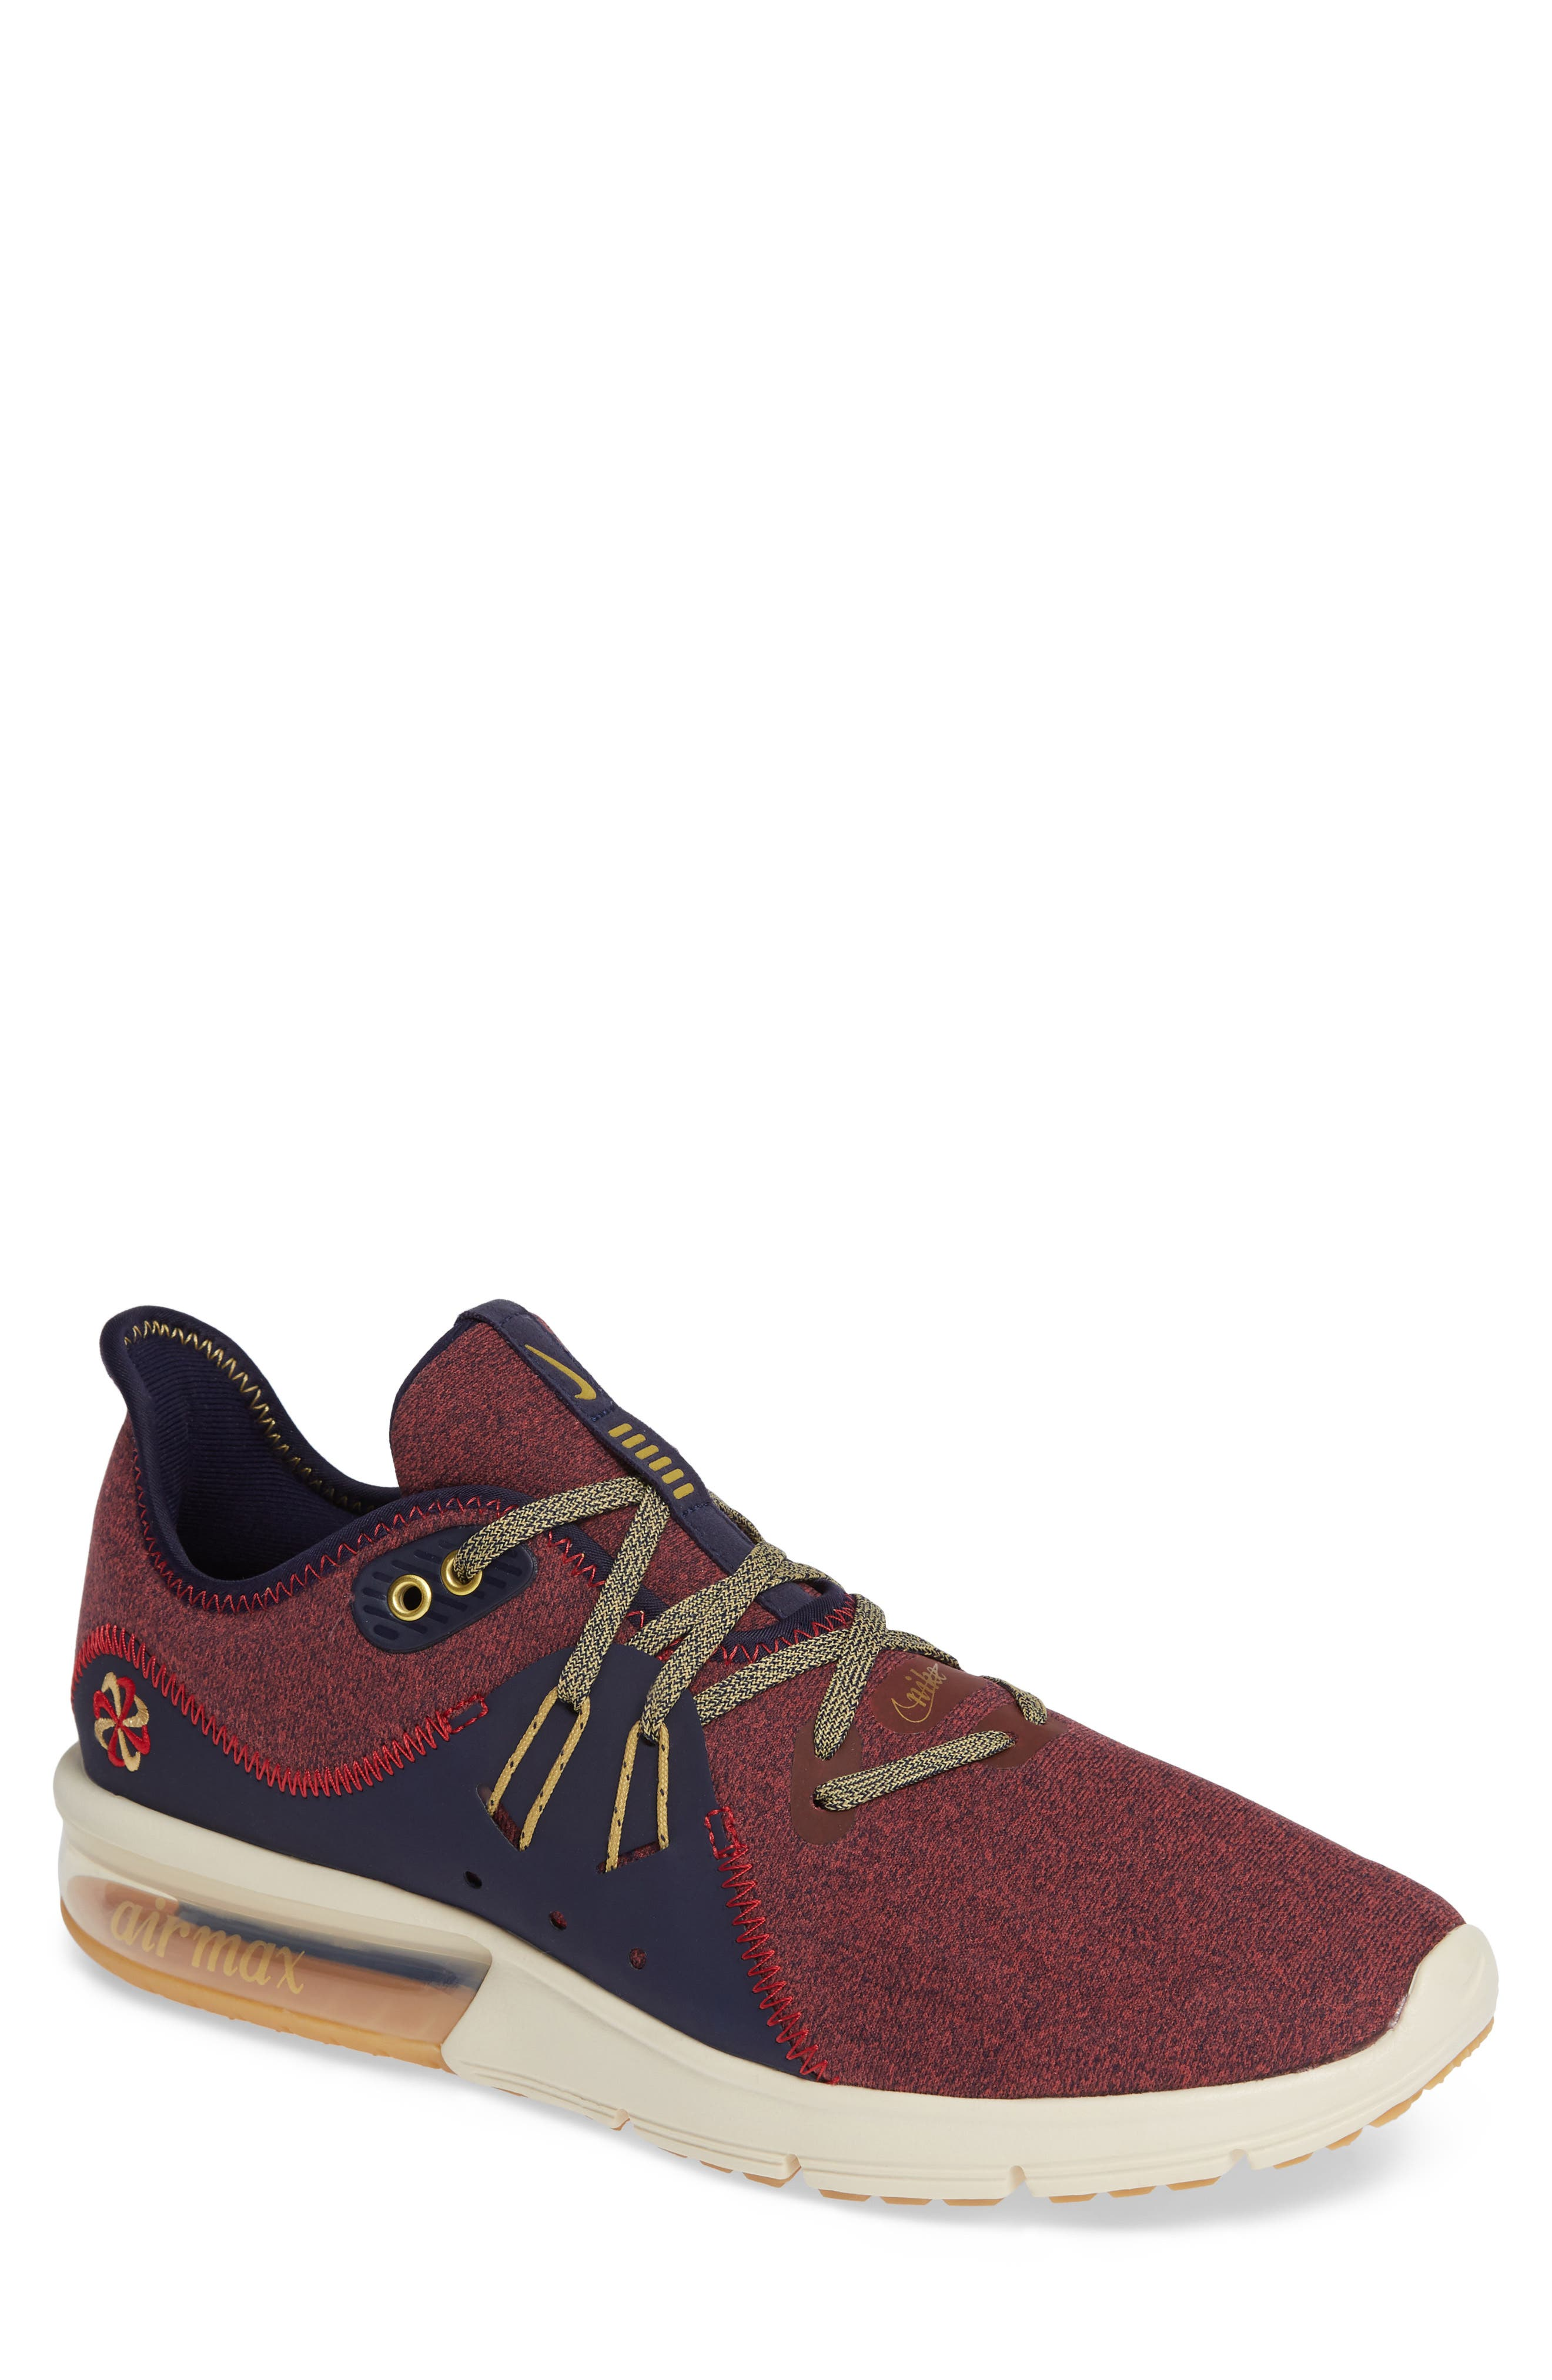 Air Max Sequent 3 PRM VST Sneaker,                             Main thumbnail 1, color,                             RED CRUSH/ WHEAT GOLD/ BLUE